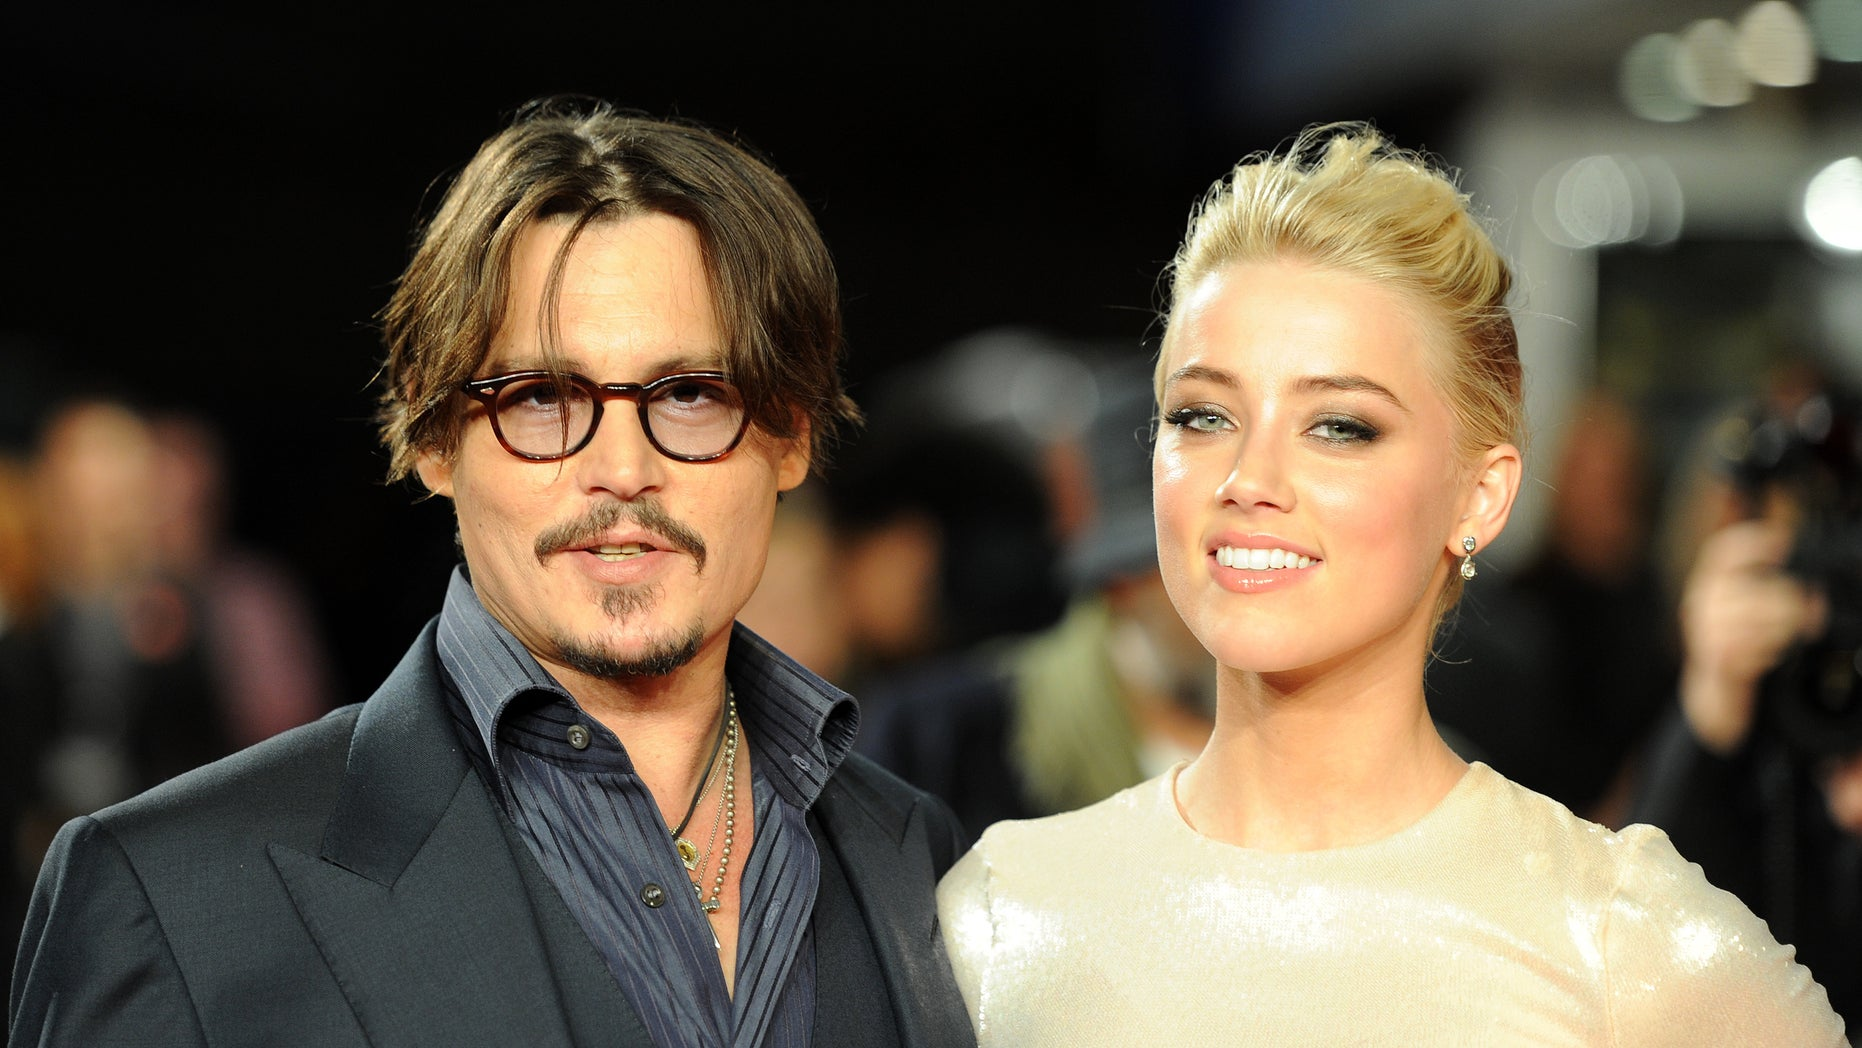 """November 3, 2011. Johnny Depp and Amber Heard pose for photographers as they arrive for the European premiere of """"The Rum Diary"""" in London."""